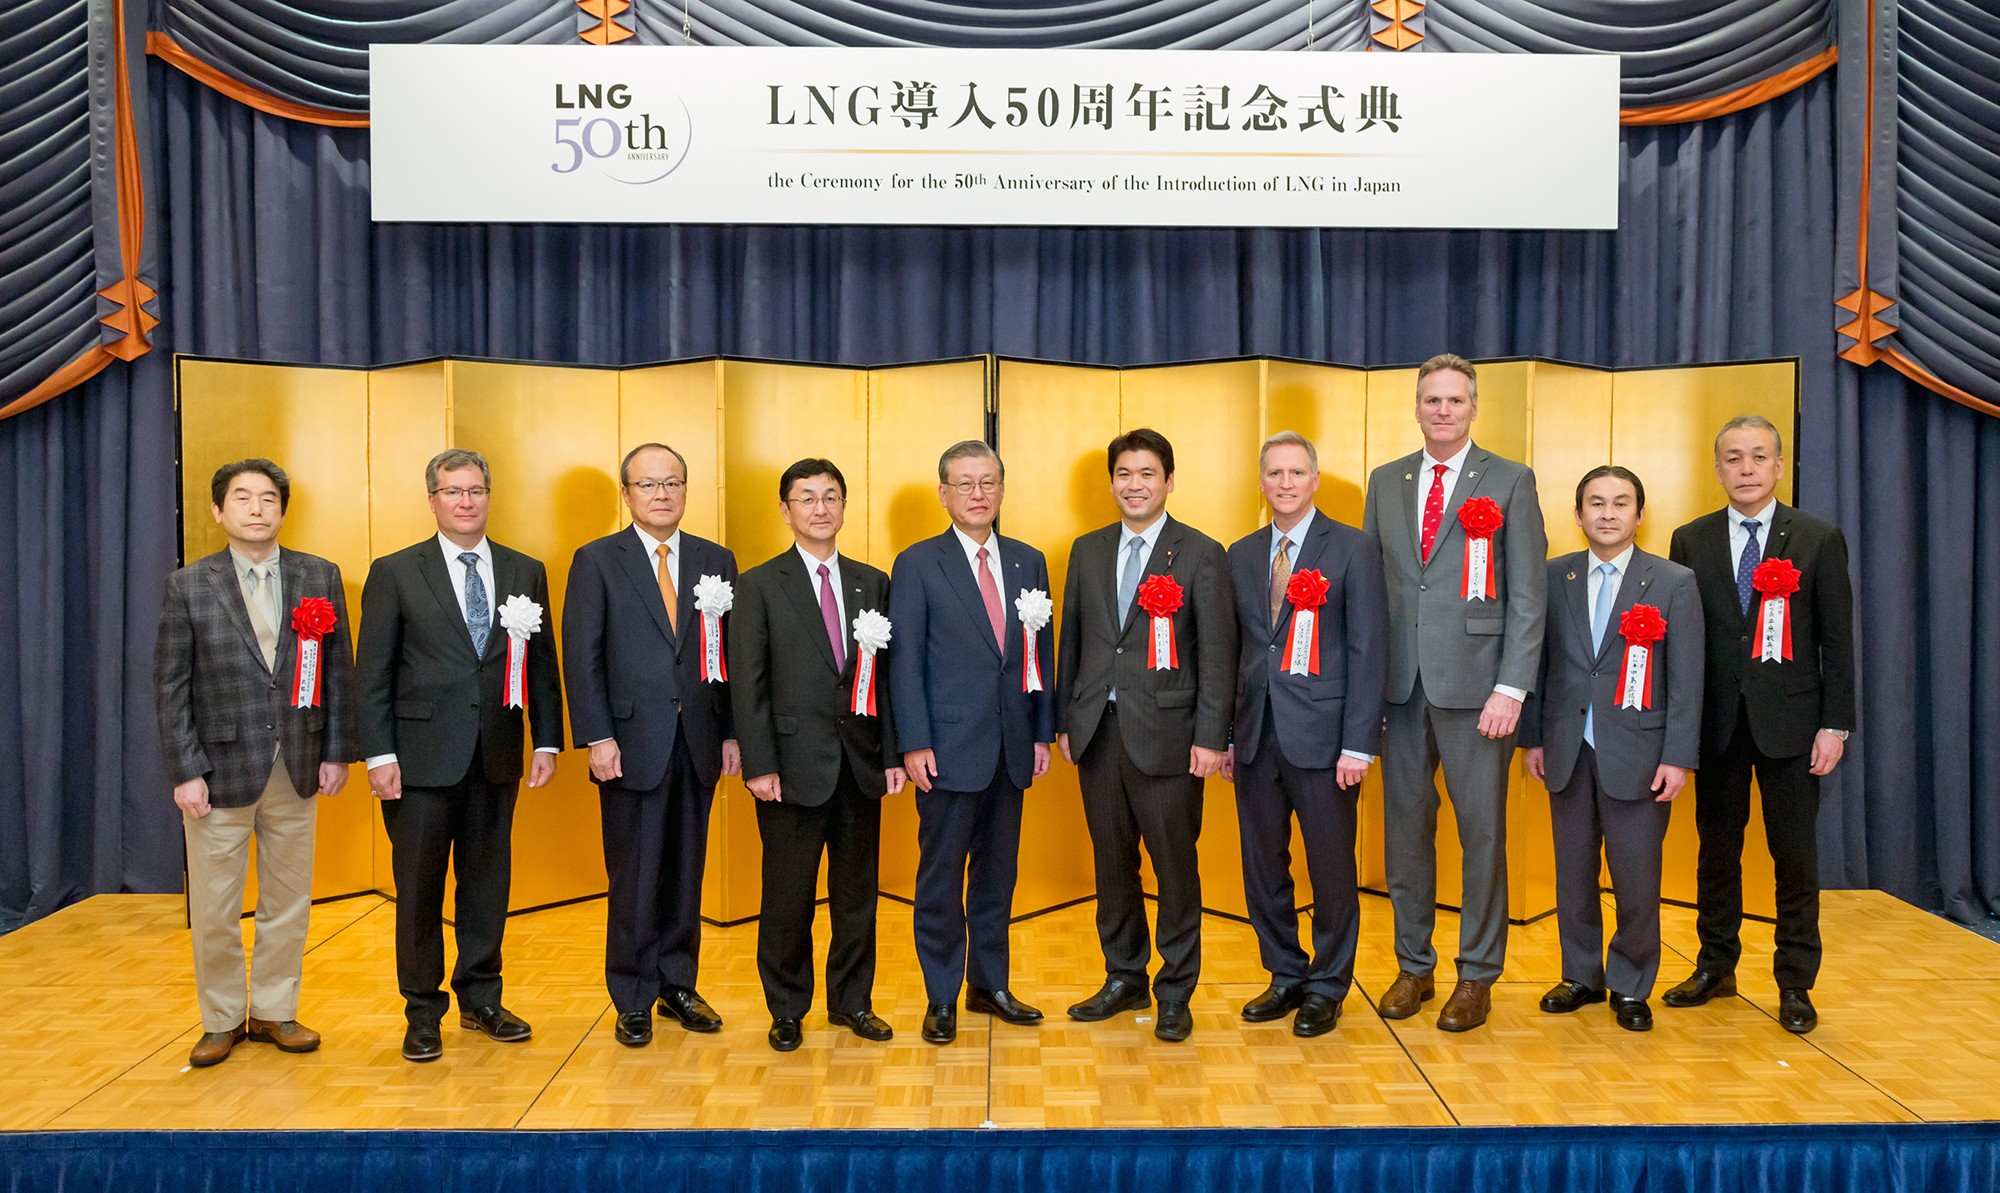 At a celebration commemorating the 50th anniversary of LNG in Japan, from left: Professor Takeo Kikkawa, Tokyo University of Science; Bill Bullock, president, ConocoPhillips Asia Pacific & Middle East; Takehiko Kakiuchi, president, Mitsubishi Corporation; Toshihiro Sano, chairman, JERA; Takashi Uchida, president, Tokyo Gas; Deputy Minister of Economy, Trade and Industry Yohei Matsumoto; Joseph Young, charge d'affaires. U.S. Embassy; Alaska Governor Michael Dunleavy; Masanobu Nakajima, deputy governor, Kanagawa Prefecture; and Toshihide Hirahara, deputy mayor, Yokohama City